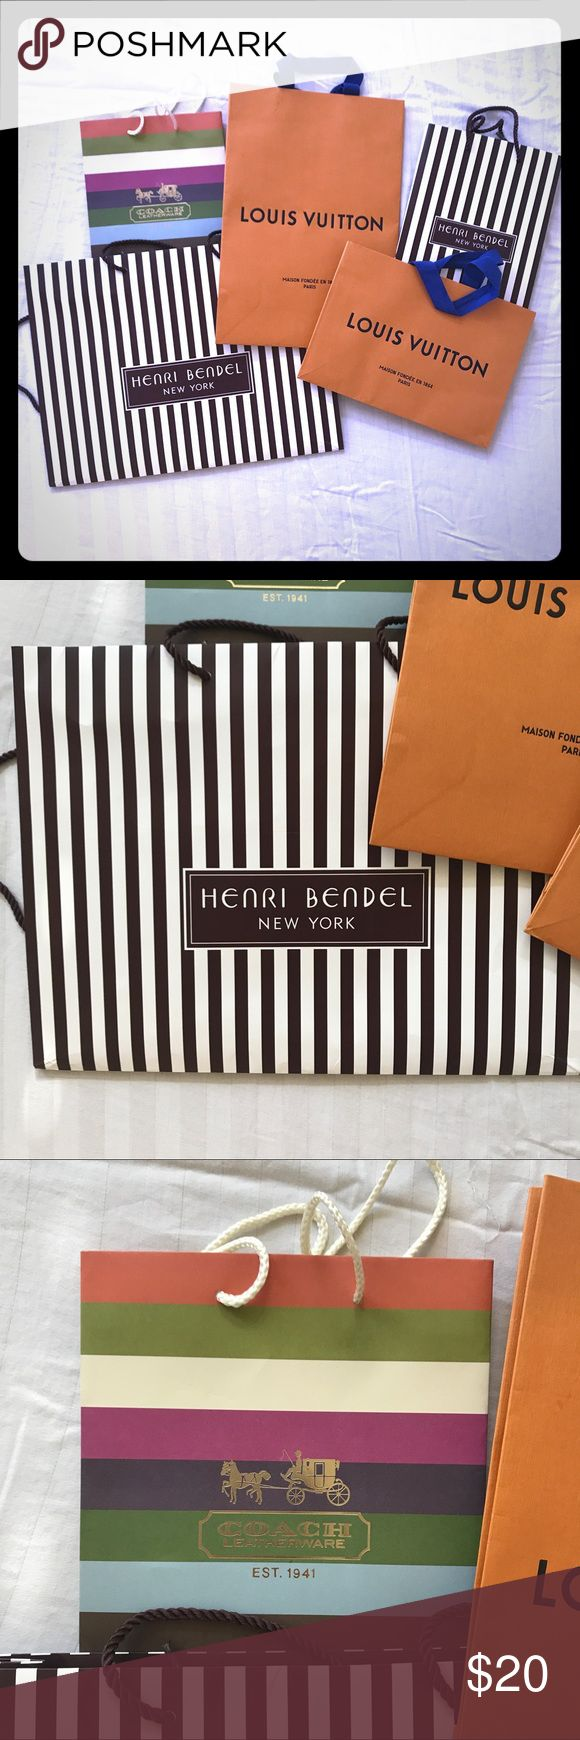 Shopping Bag Bundle This bundle includes 2 Louis Vuitton Shopping bags (S/M), 2 Henri Bendel Shopping bags (S/L), and 1 Coach Shopping bag (S). Great bundle for collectors or for staging pieces!   Same Day shipping before 3pm (Mon- Fri) Noon on Saturday (PST) Louis Vuitton Other